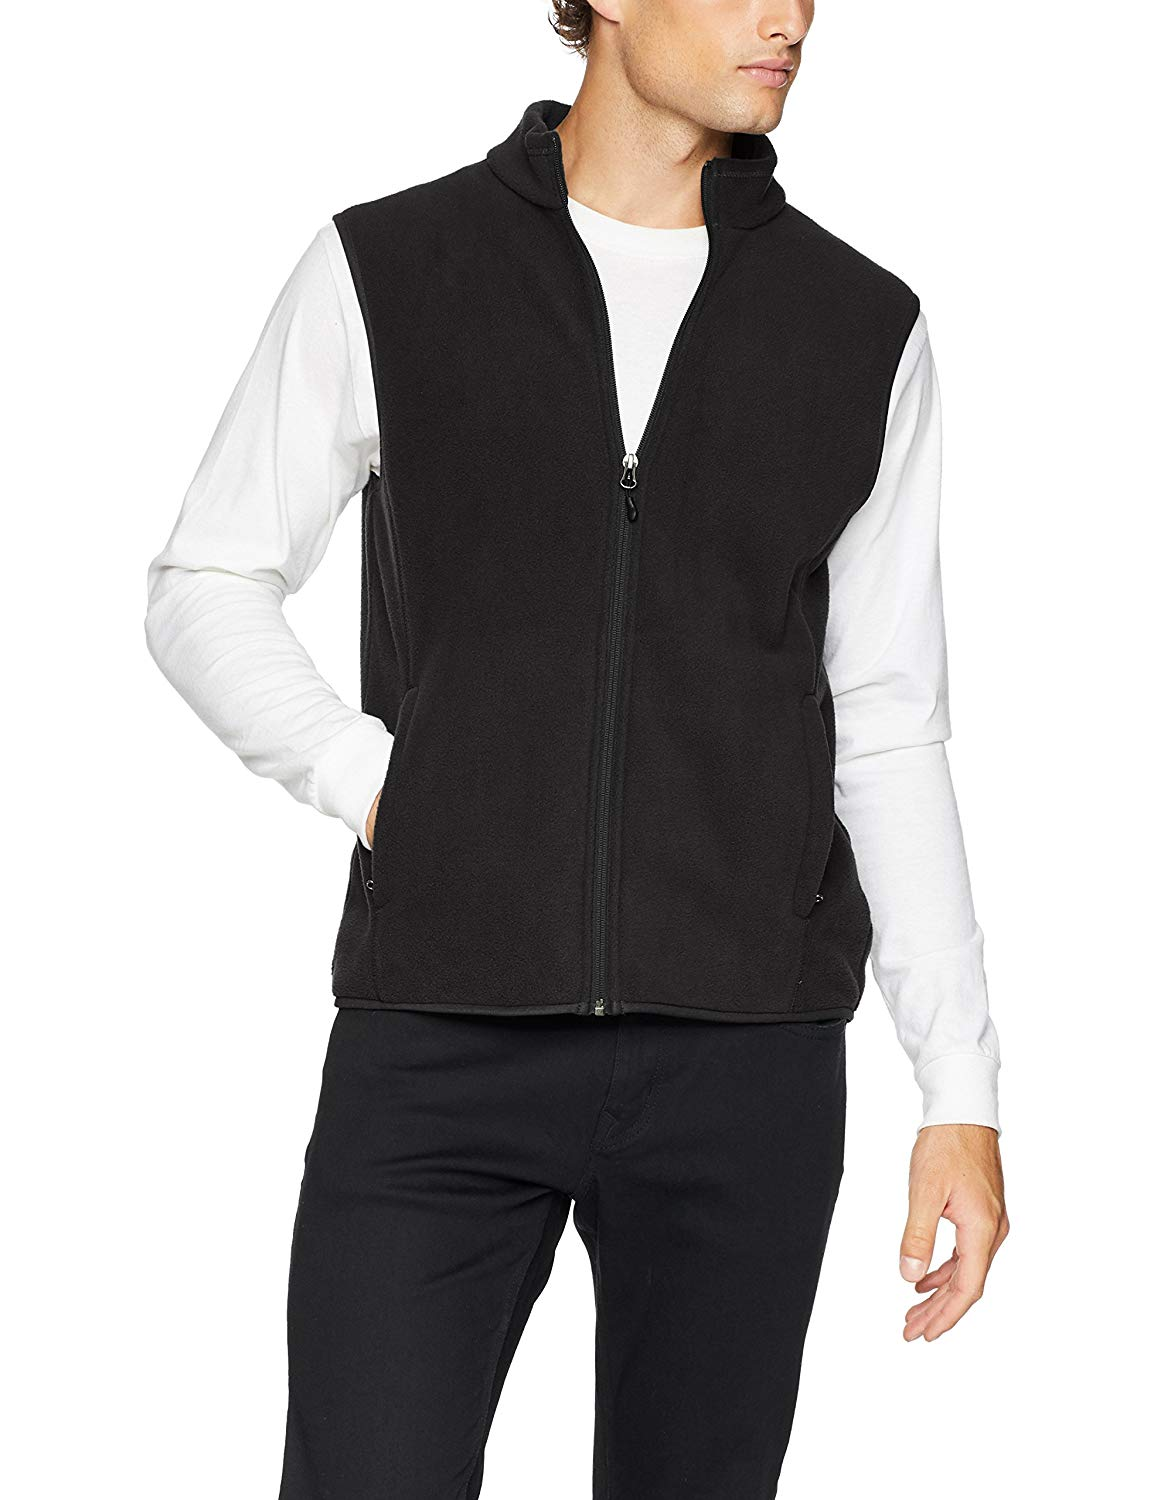 Amazon Essentials Men's Standard Full-Zip Polar Fleece Vest,